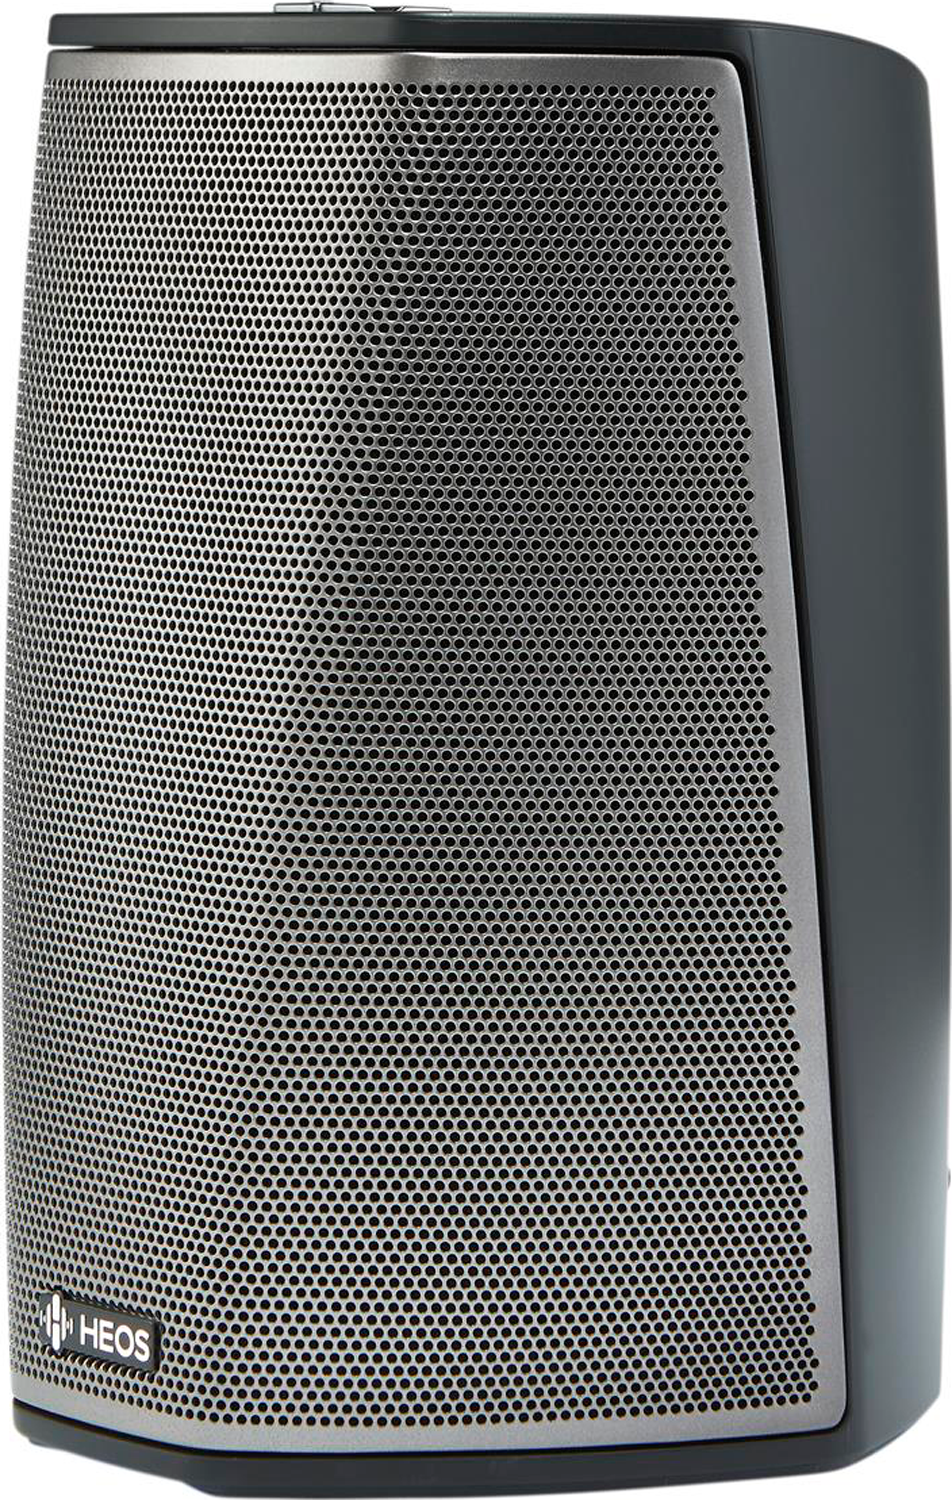 HEOS 1 HS2 Compact WiFi & Bluetooth Speaker Black